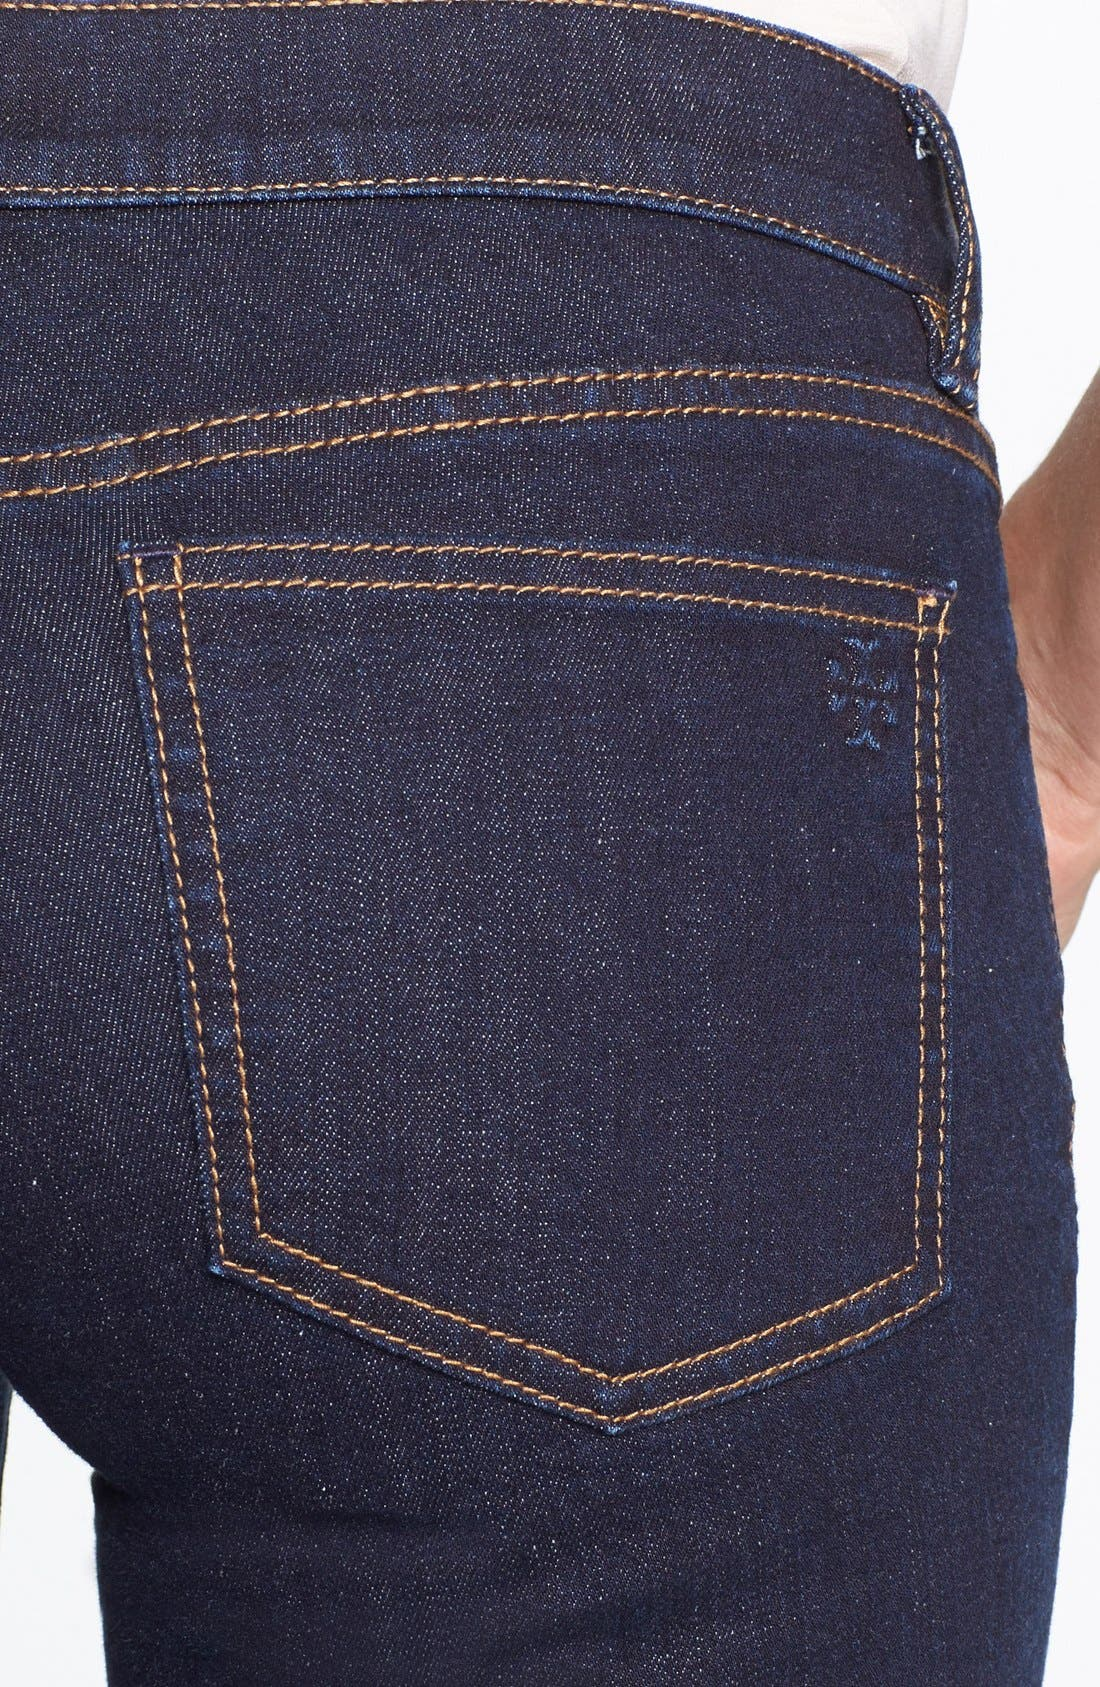 Alternate Image 3  - Tory Burch Stretch Straight Leg Jeans